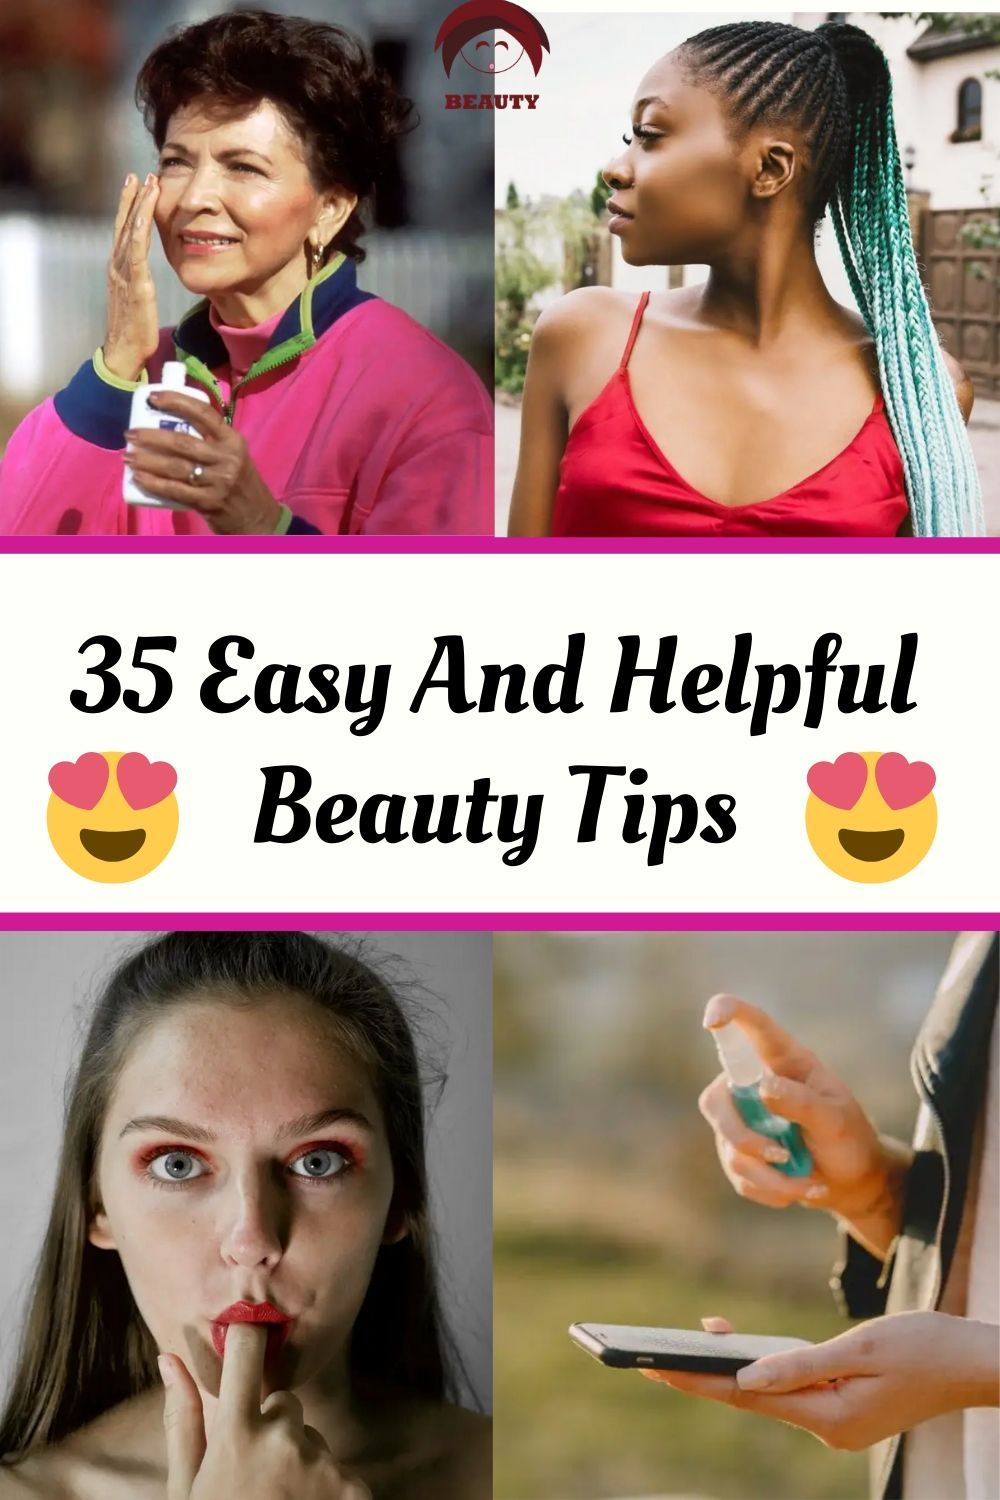 11 tips from beauty industry experts in 11  Beauty hacks